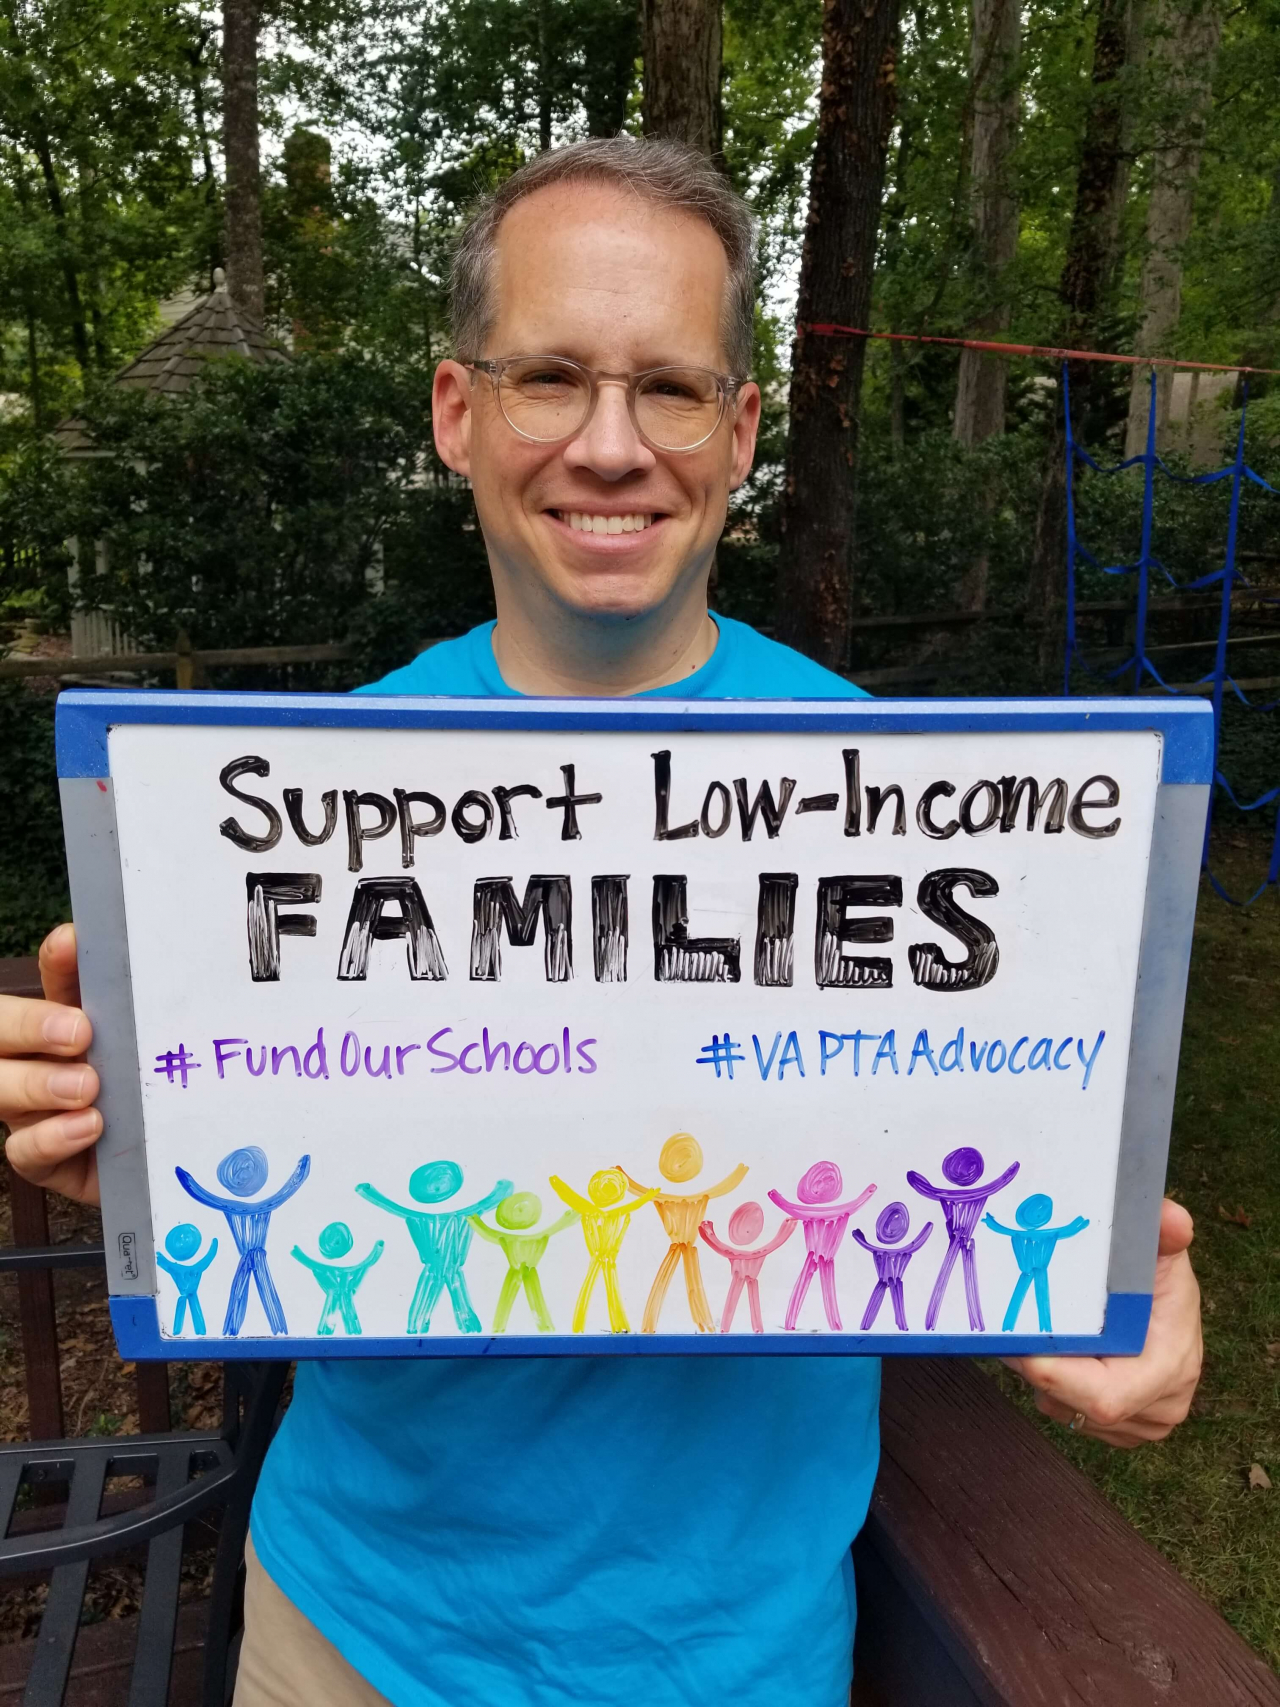 Example: Support low-income families. #FundOurSchools #VAPTAAdvocacy